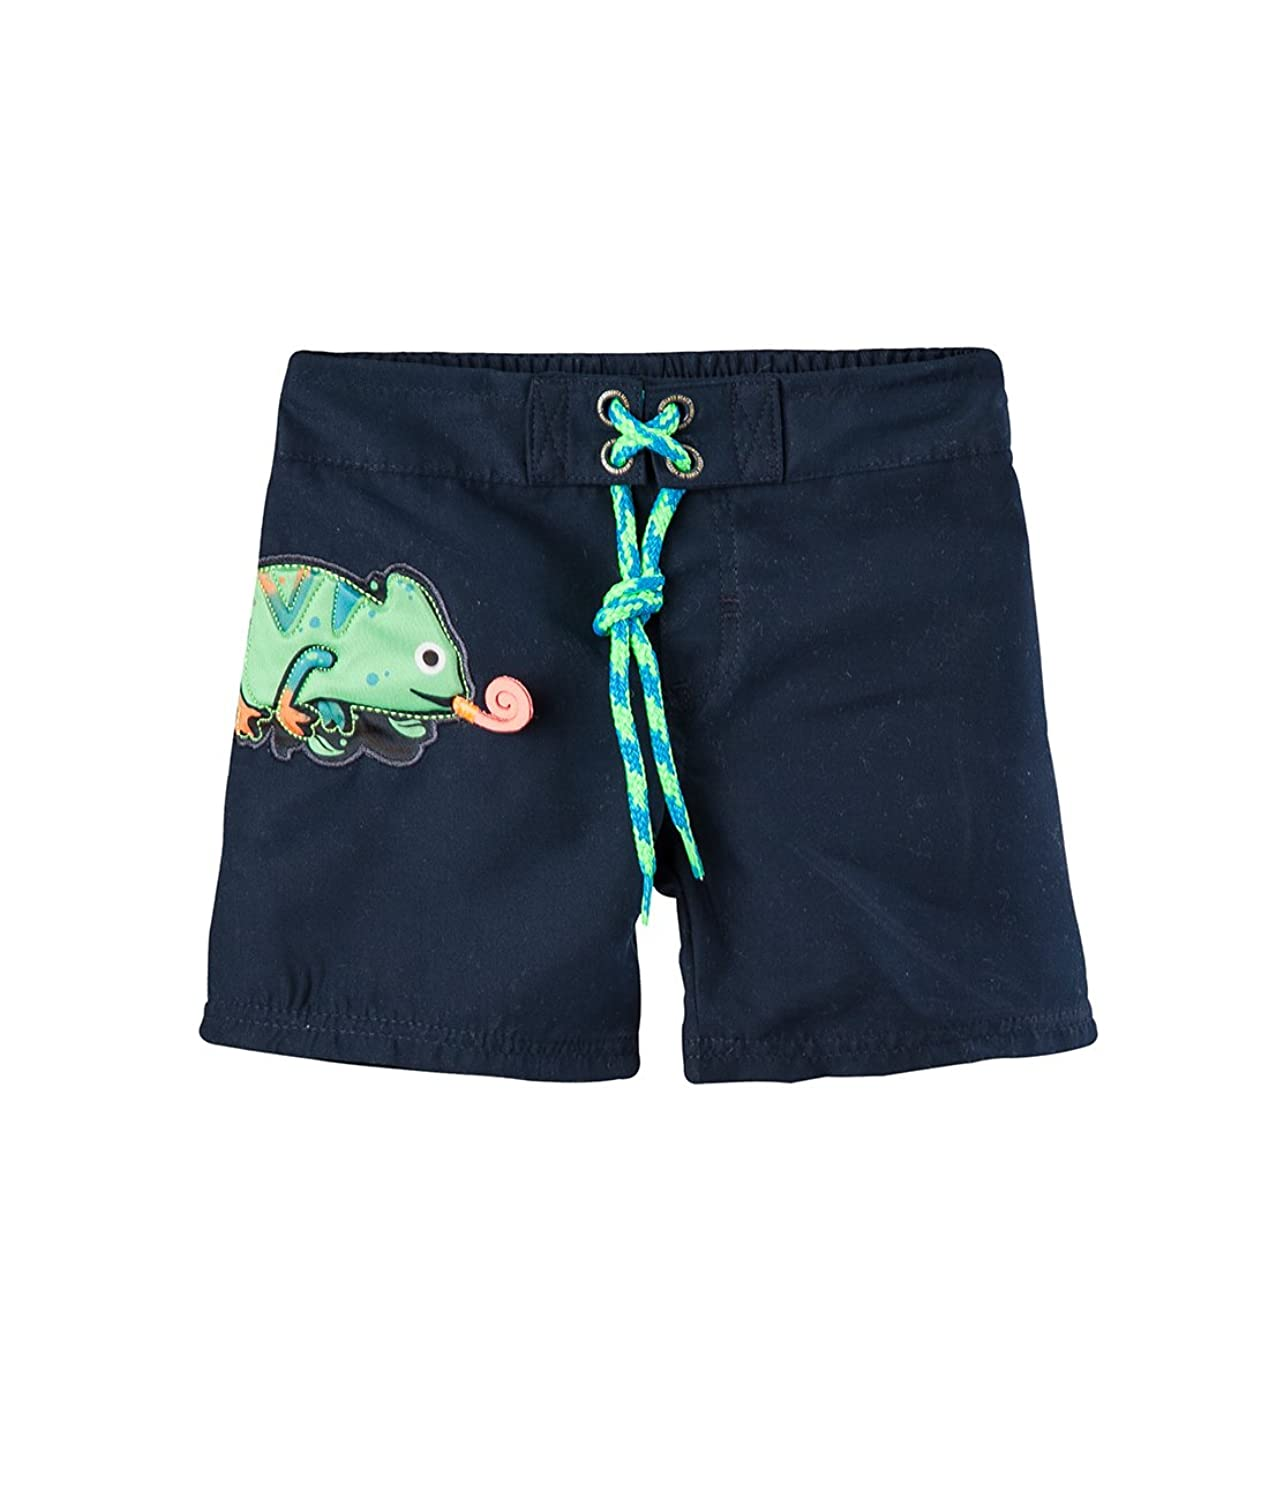 Amazon.com: OFFCORSS Newborn Infant Baby Swim Trunks Bermudas de ...